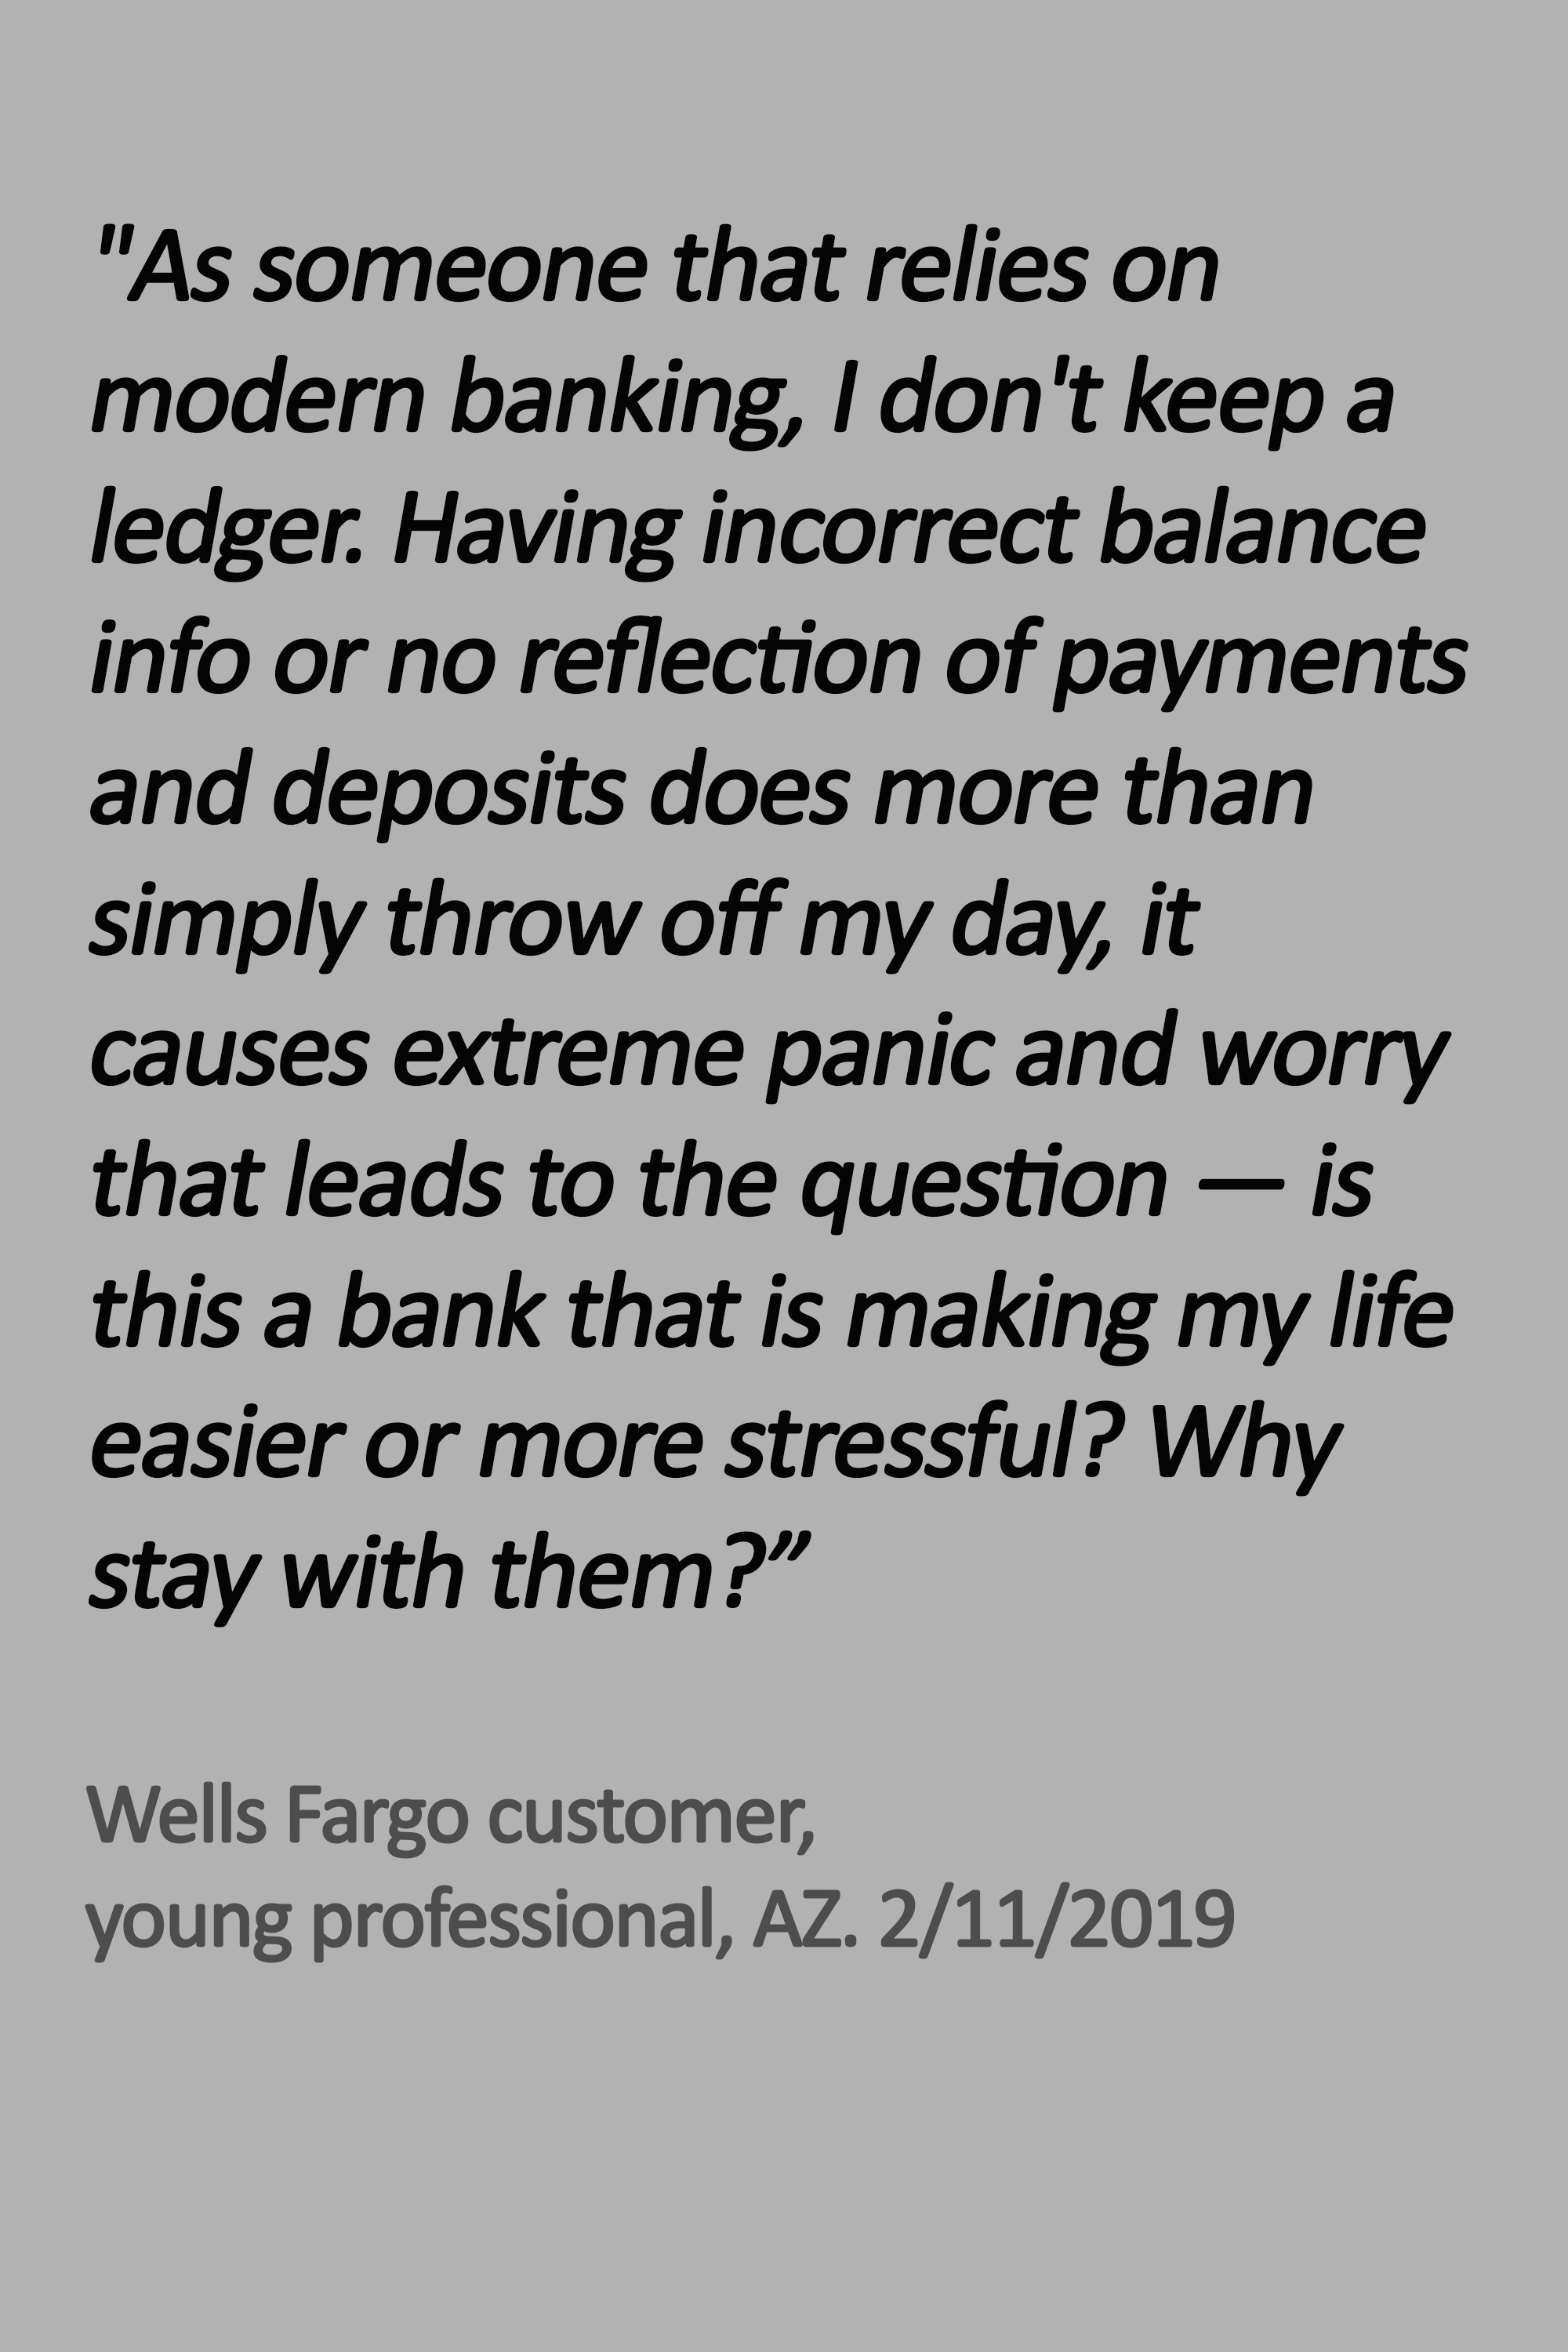 Wells Fargo: New Logo Can't Mask Same Old Technology - CCG